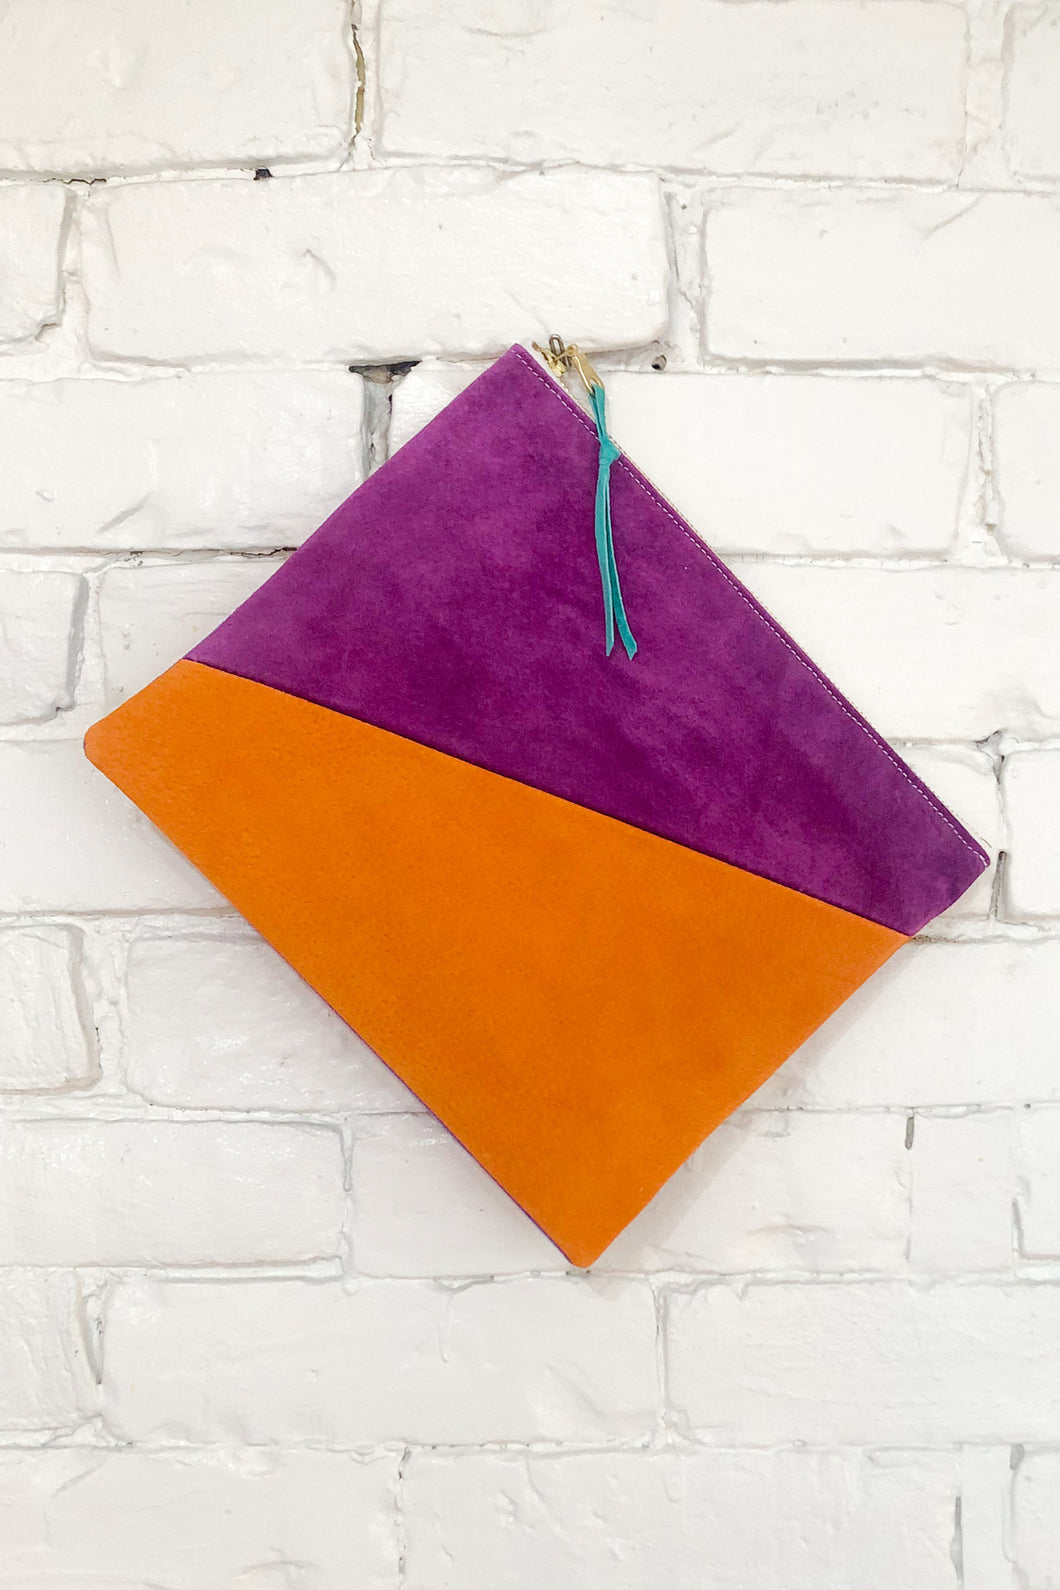 The Diagonal (Apricot, Plum, and Violet)